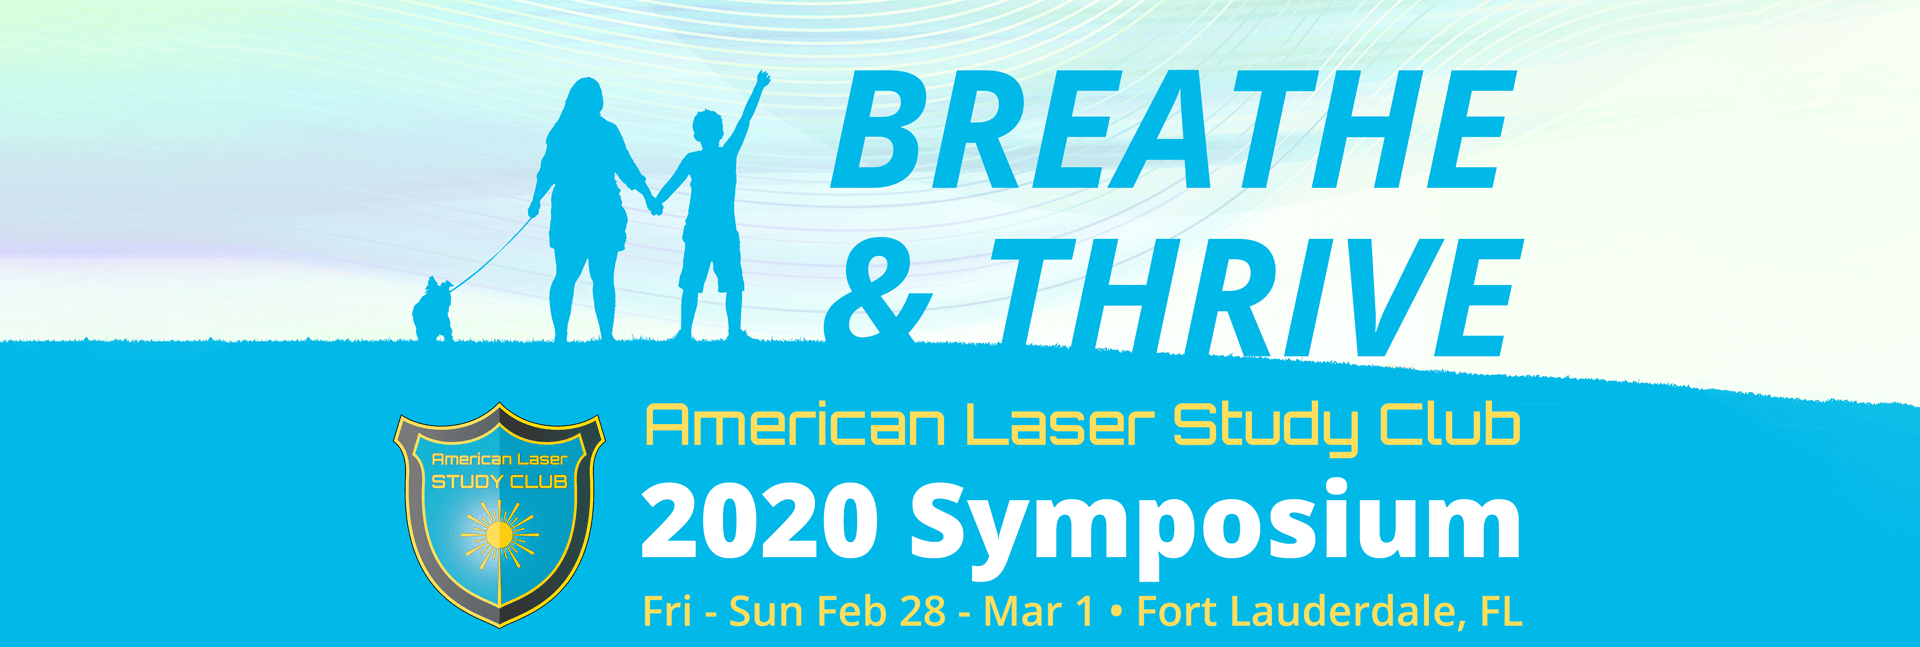 breathe and thrive laser surgery conference 2020 ALSC Symposium